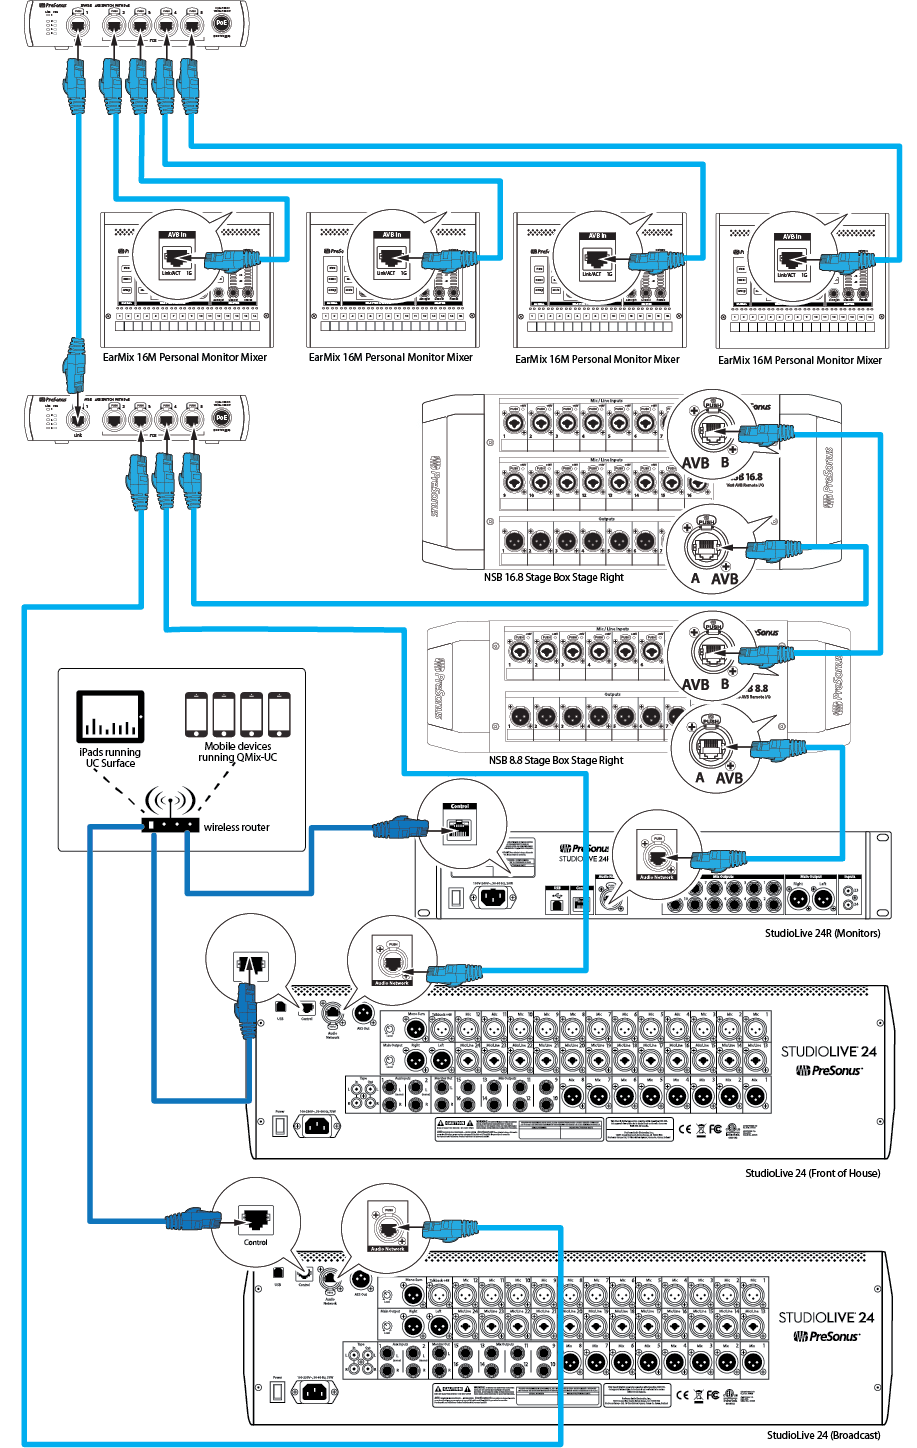 hight resolution of within the presonus avb ecosystem a studiolive series iii mixer must be used the master word clock for the network for some devices clocking is handled